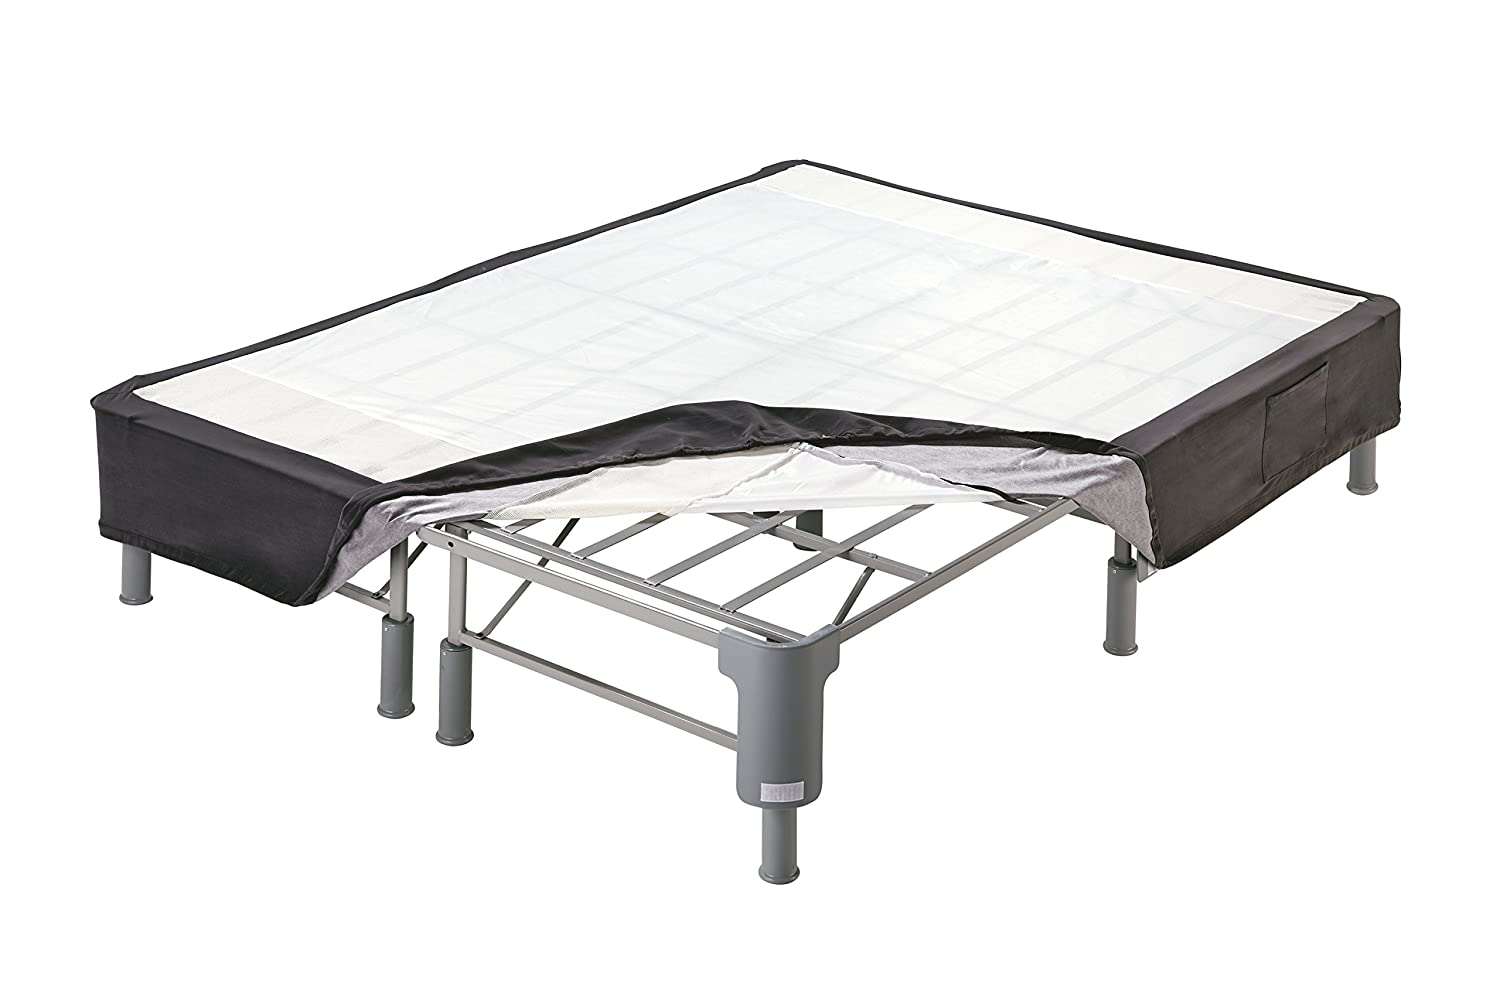 Ashley Furniture Signature Design - Sierra Sleep by Ashley - Perfect Riser - Better than a Box Spring All-in-One Support Foundation - Twin - Dark Gray M86X12